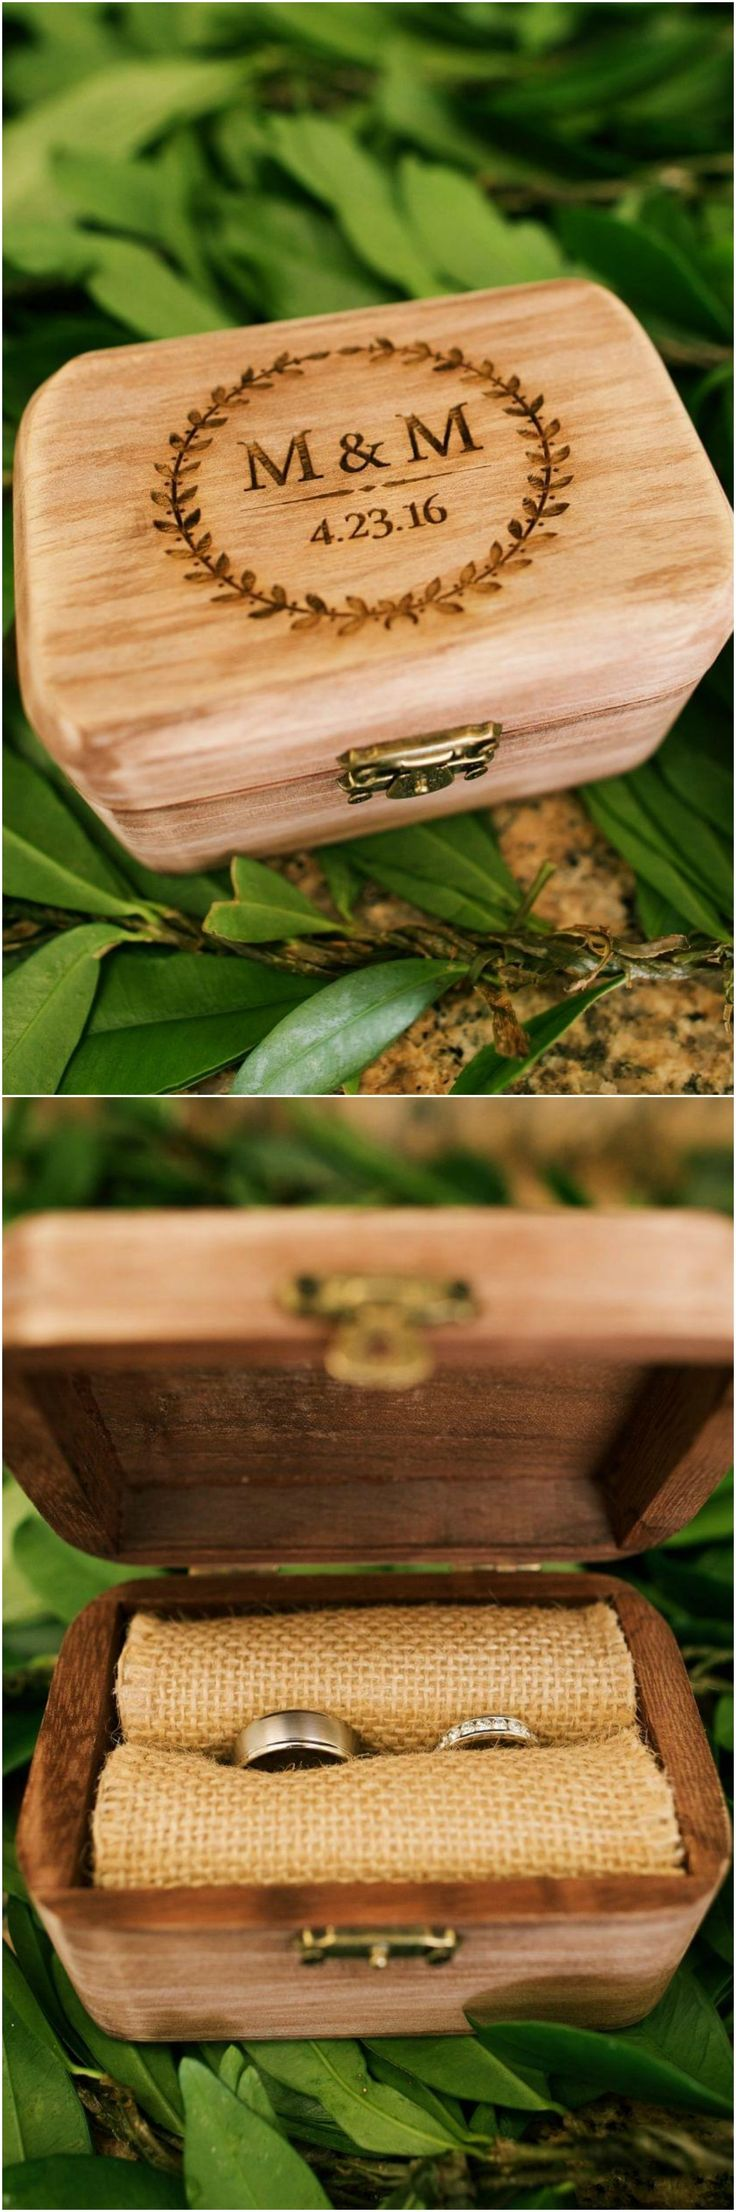 Wooden ring box, engraved wood, monogram, burlap, wedding rings // Anna Kim Photography